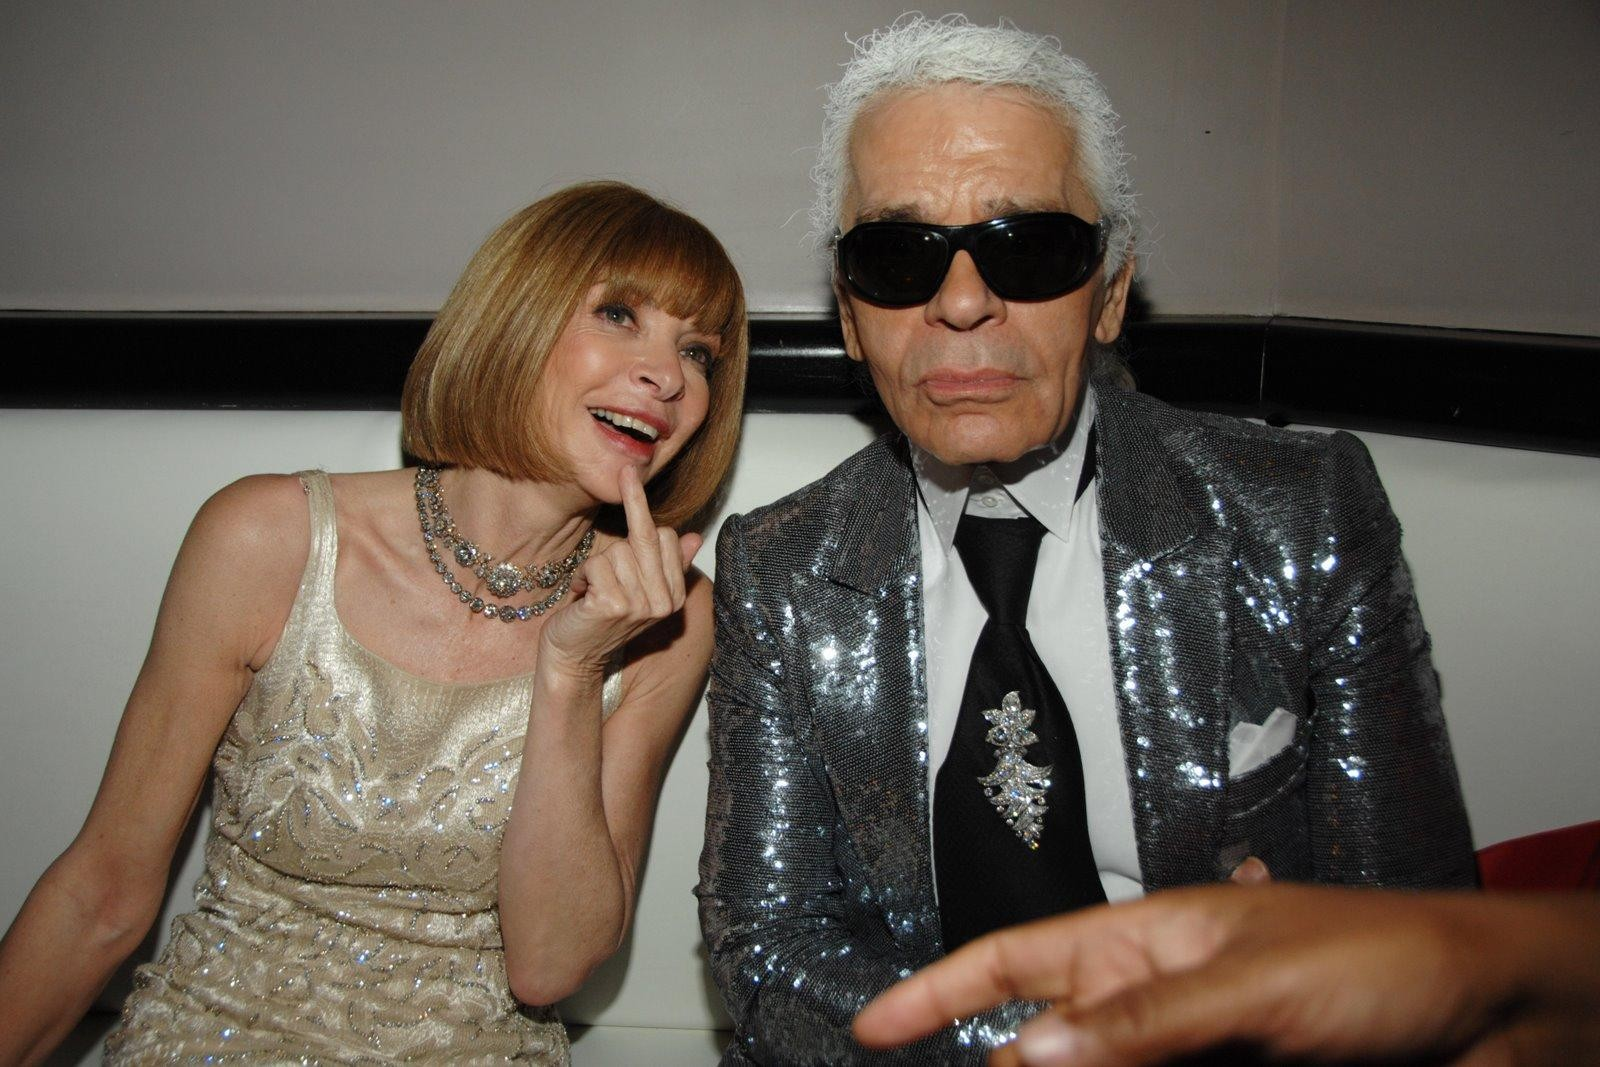 anna_wintour_and_karl_lagarfeld